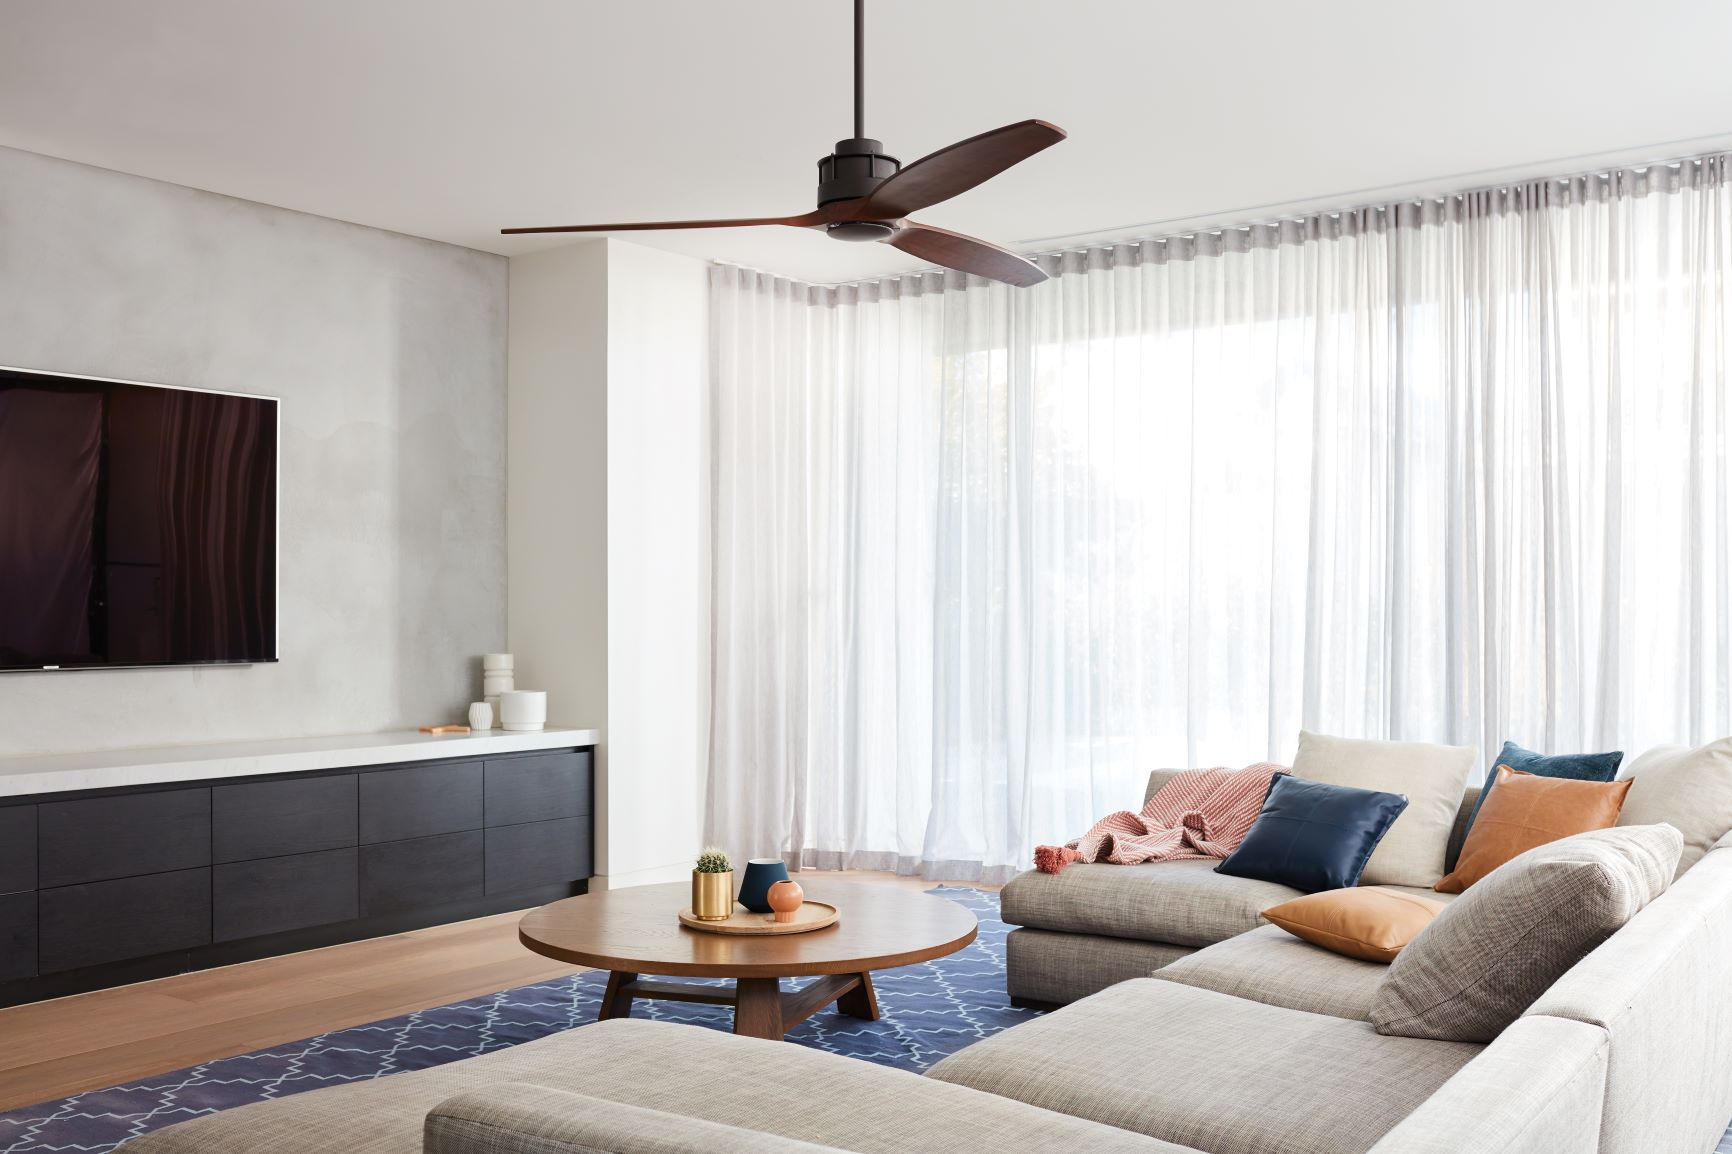 How to choose ceiling fans